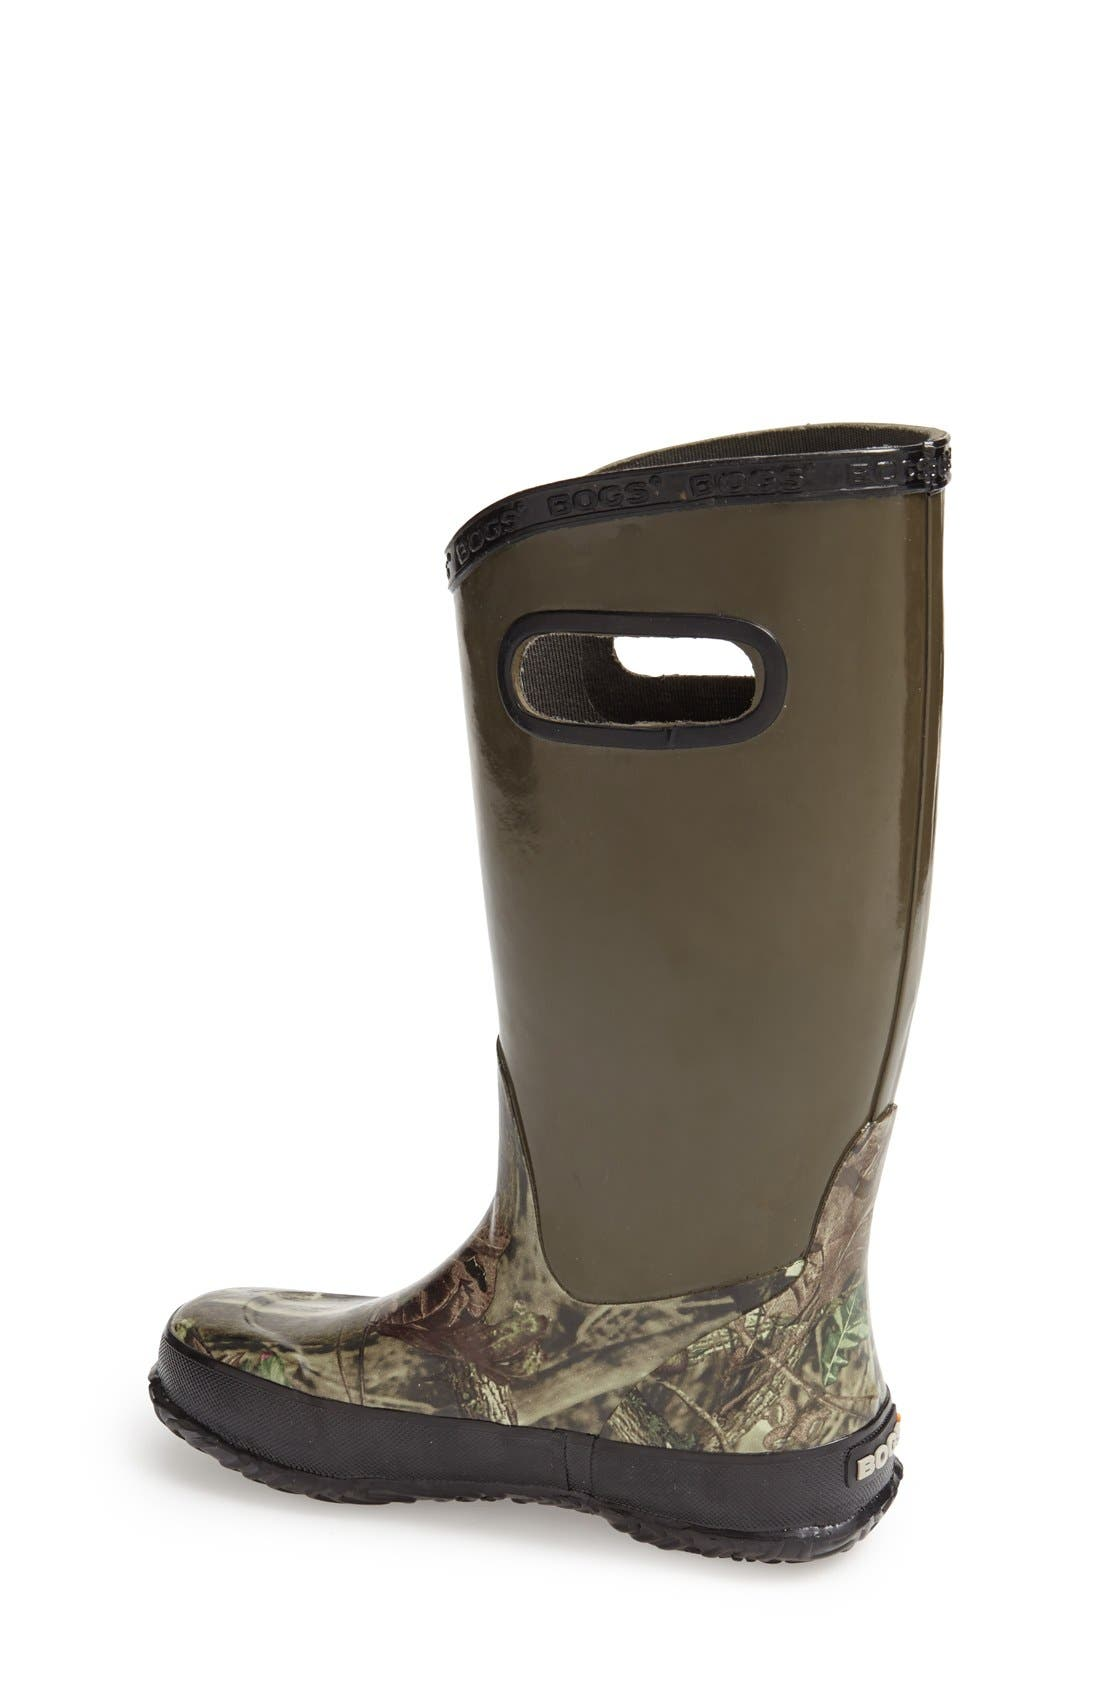 Alternate Image 2  - Bogs Hunting Waterproof Rubber Rain Boot (Walker, Toddler, Little Kid & Big Kid)